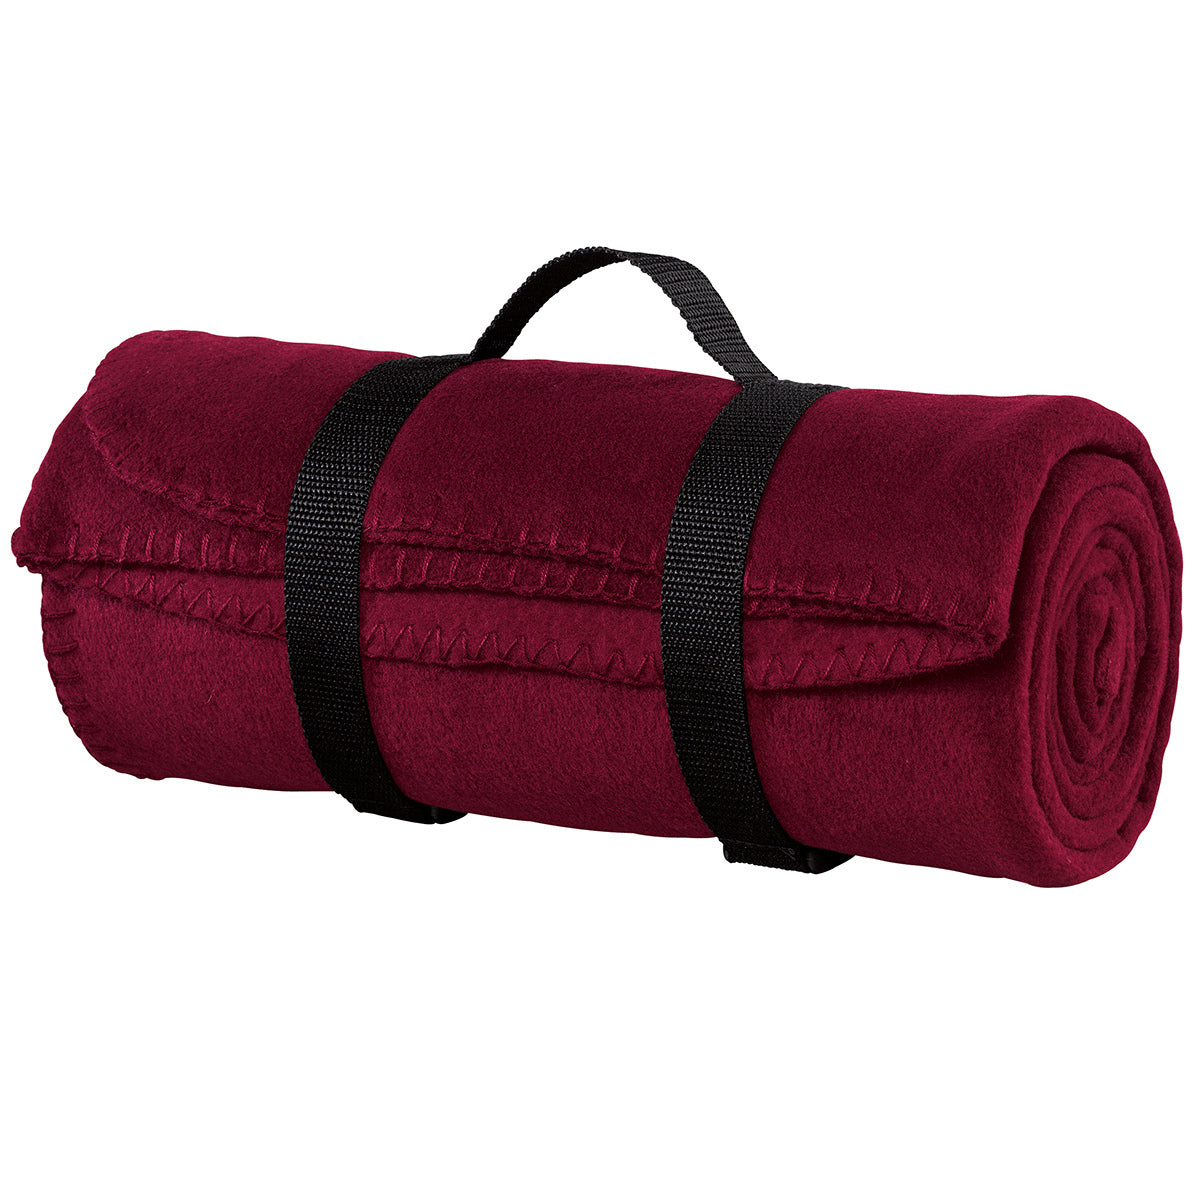 Value Fleece Blanket with Strap   Maroon